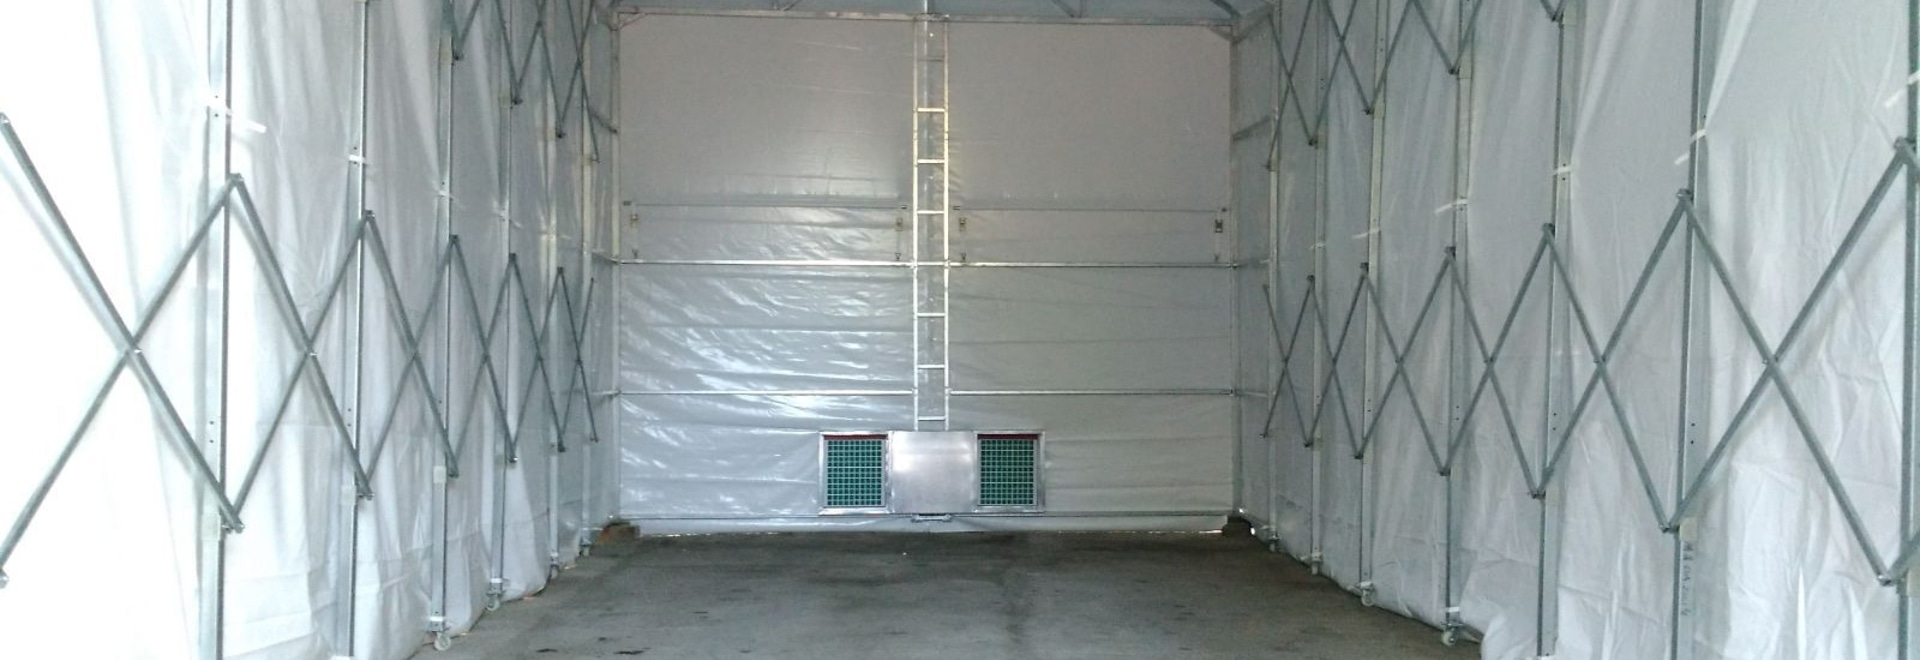 folding yacht spray booth